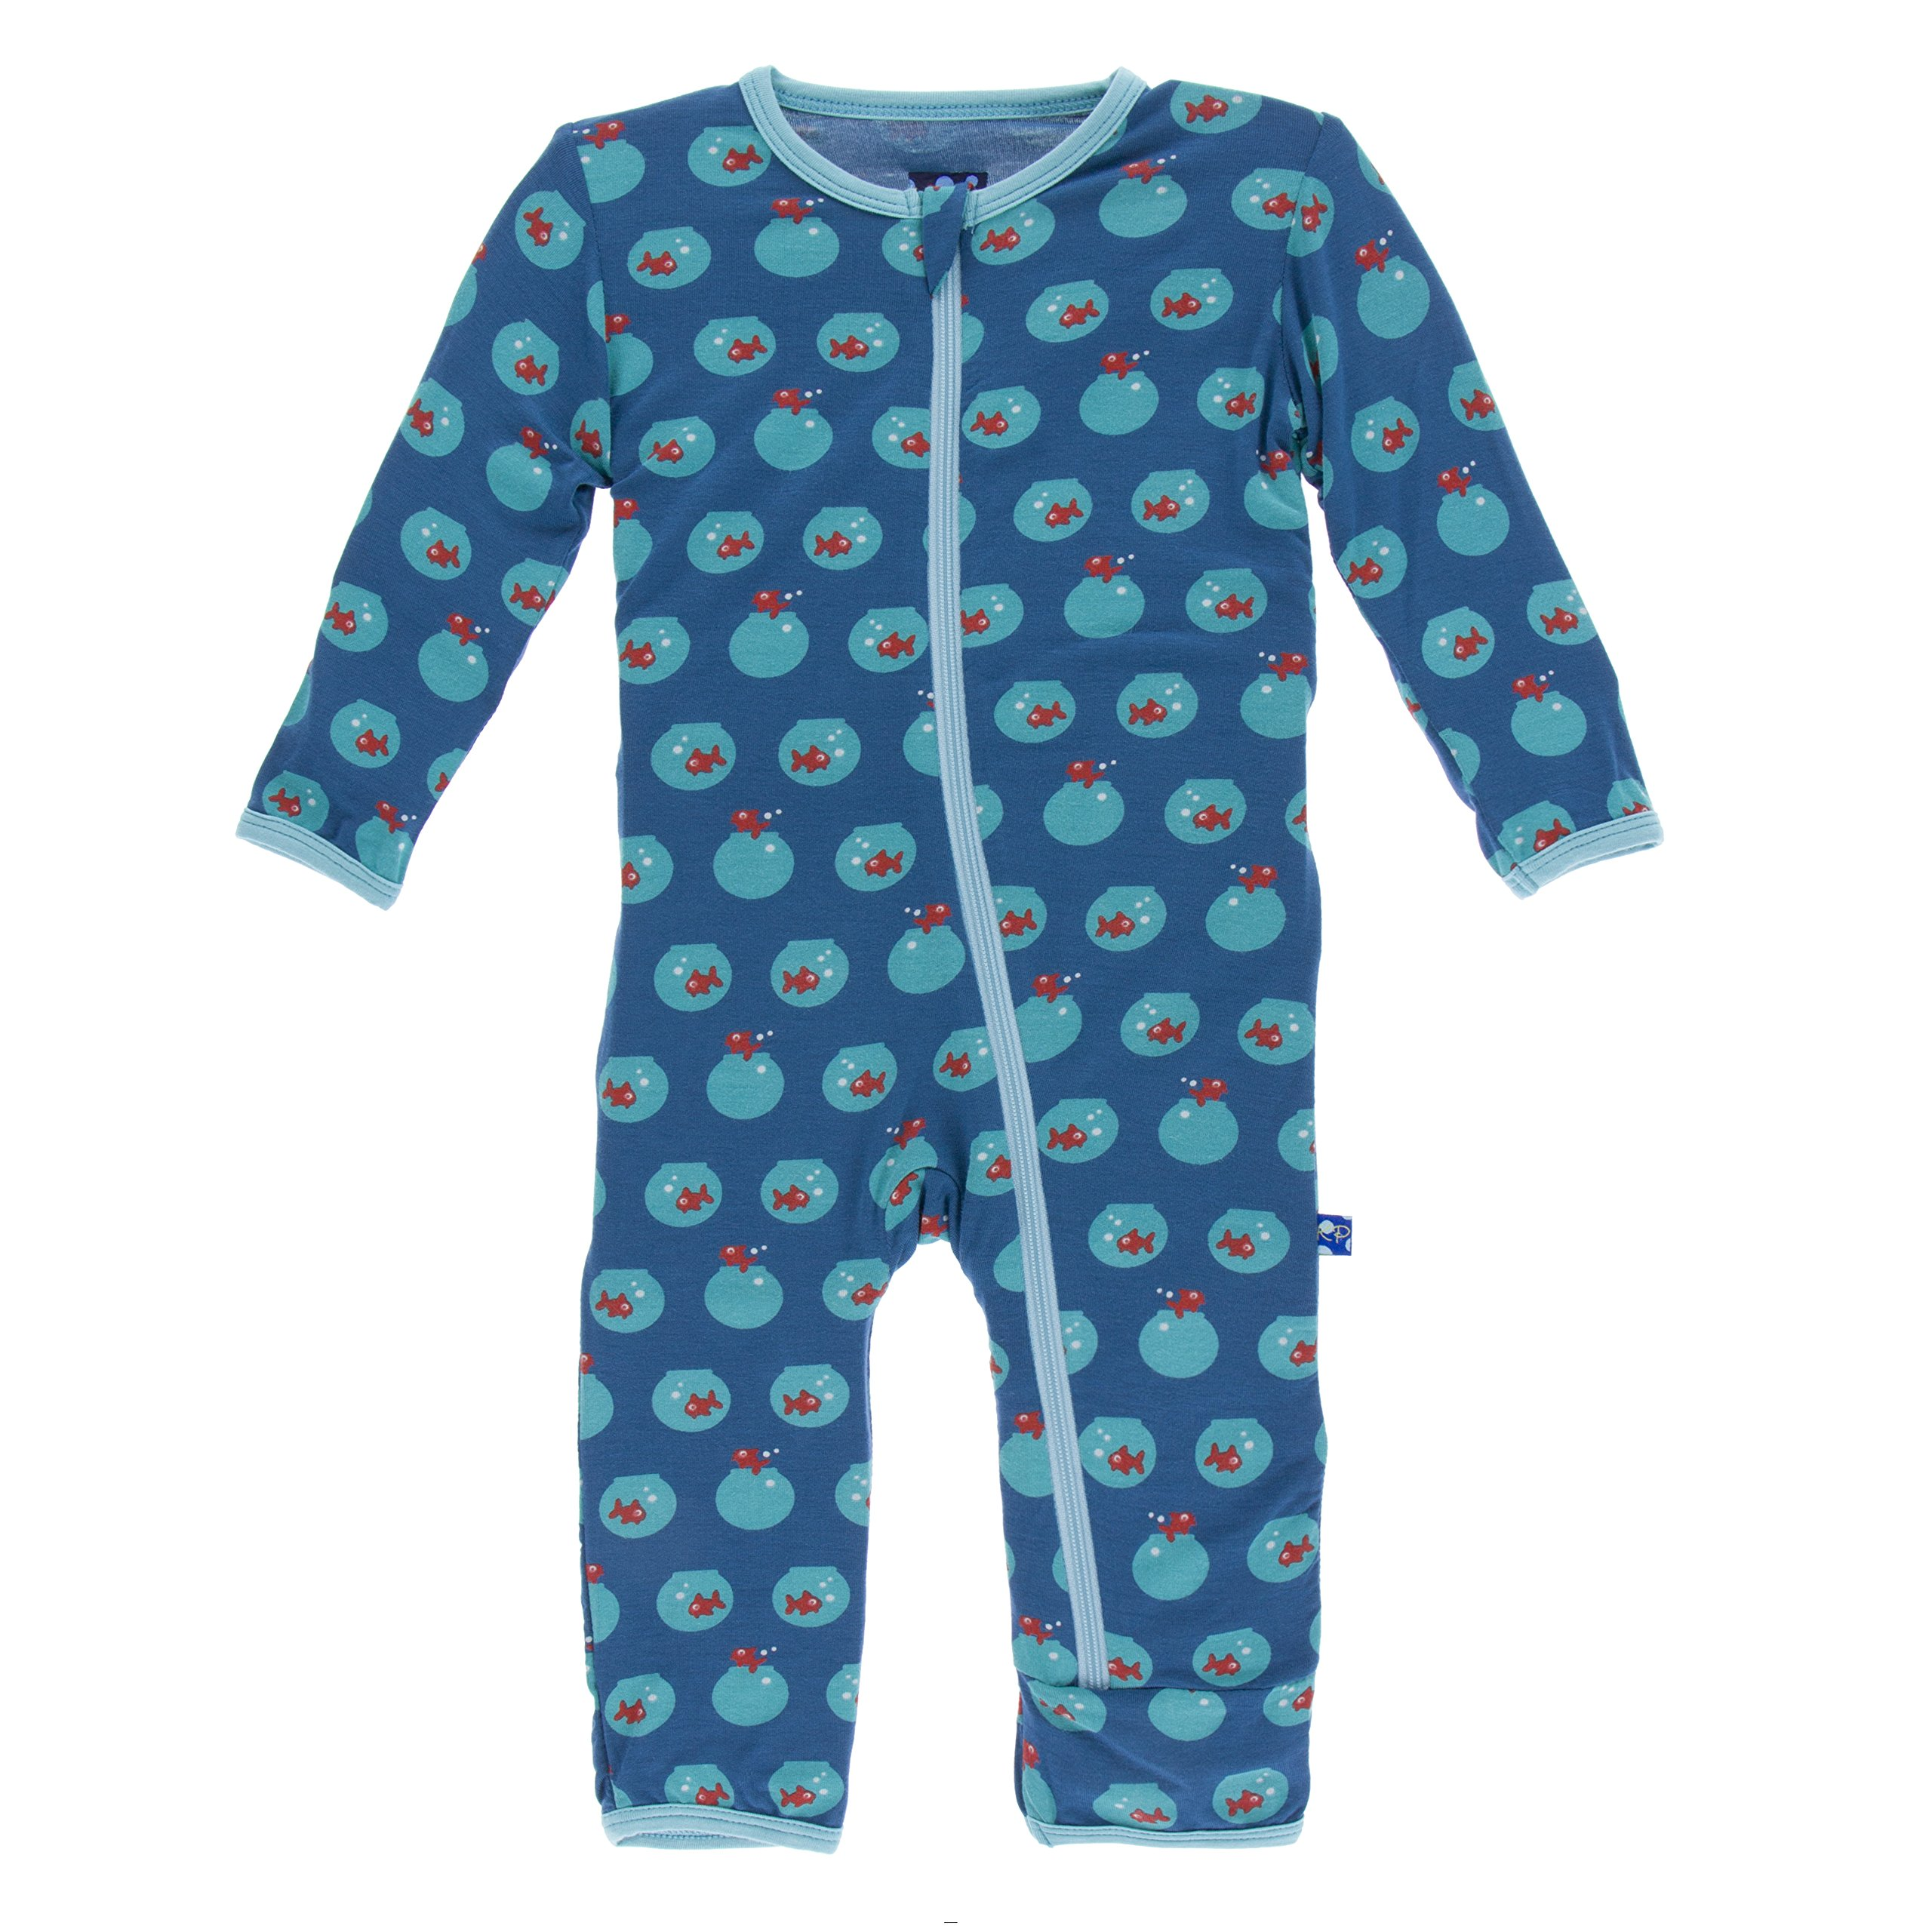 74842cfabdb8 KicKee Pants Bamboo Coverall with Zipper (3-6 Months